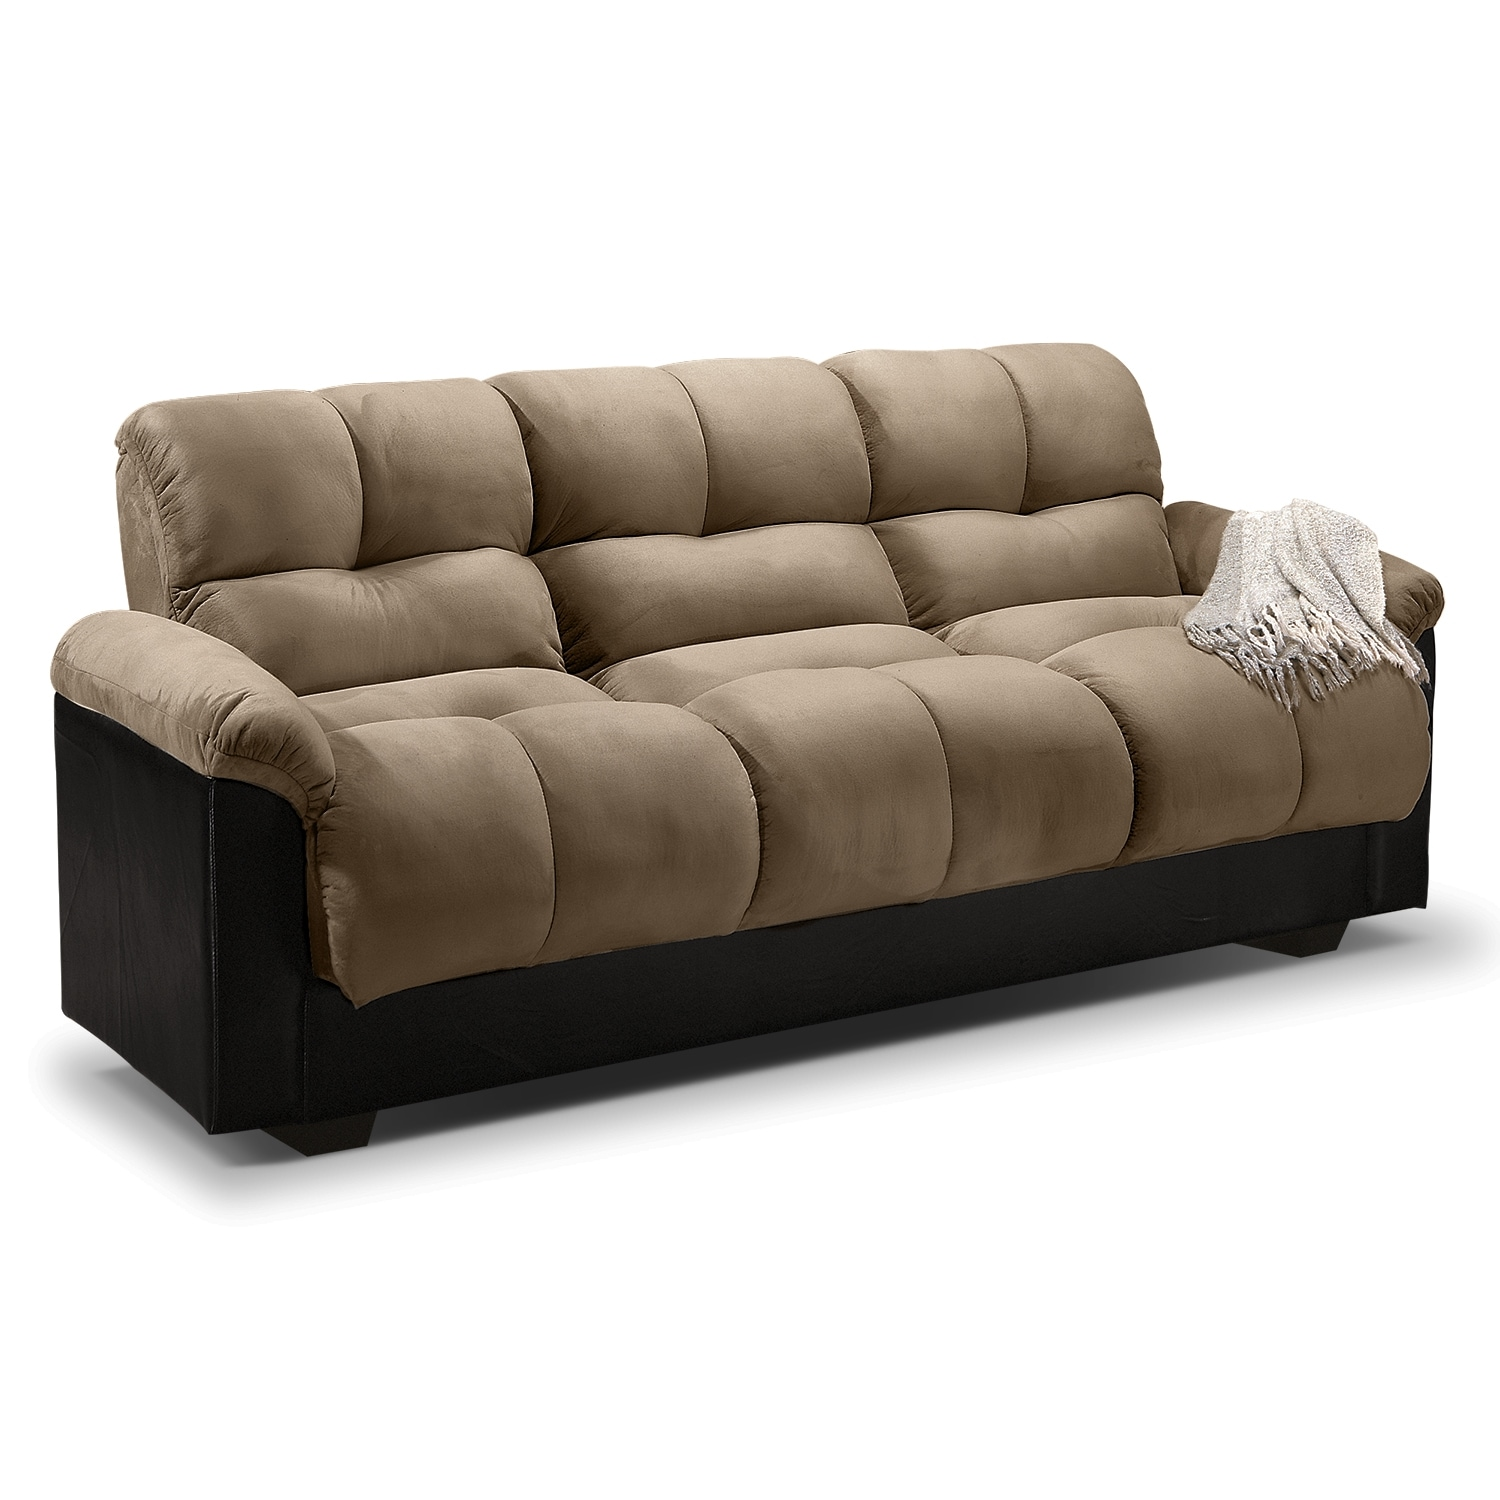 Crawford futon sofa bed with storage for Furniture sofa bed